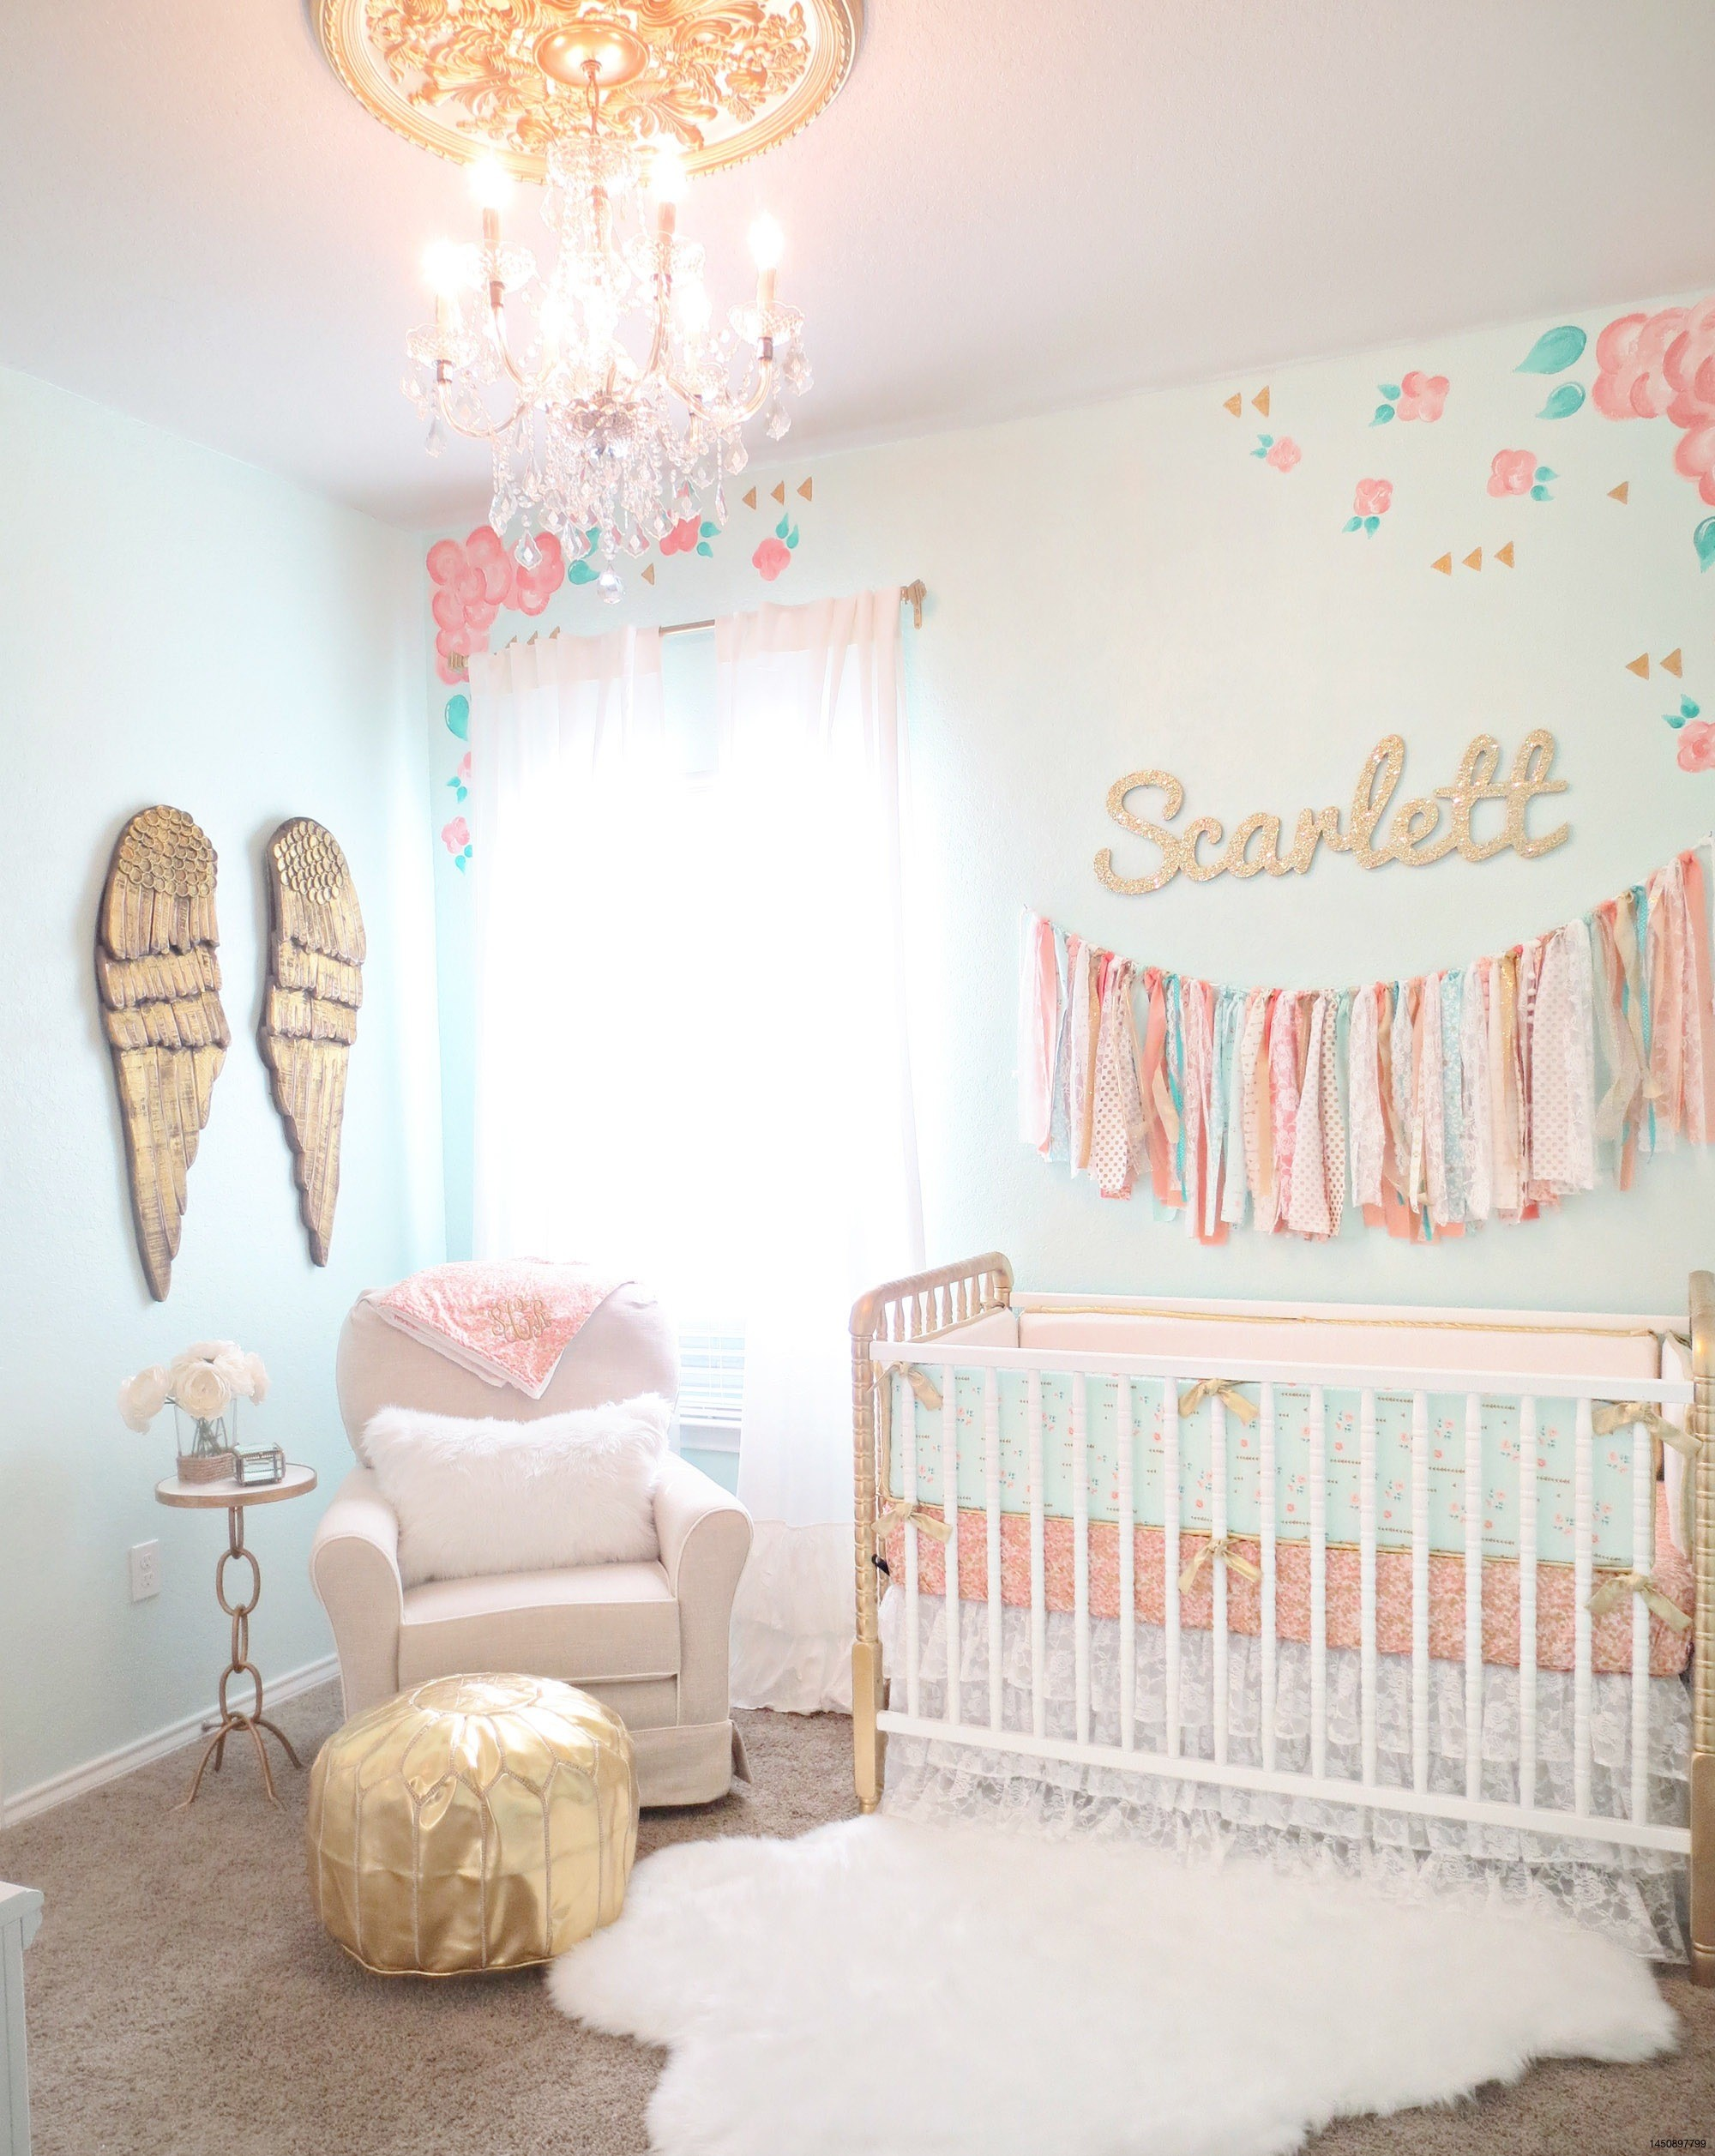 Res: 2000x2514, Magnificent Vintage Baby Wall Design Ideas Introduce Admirable Flowers Girl Vintage Wallpaper With Stunning